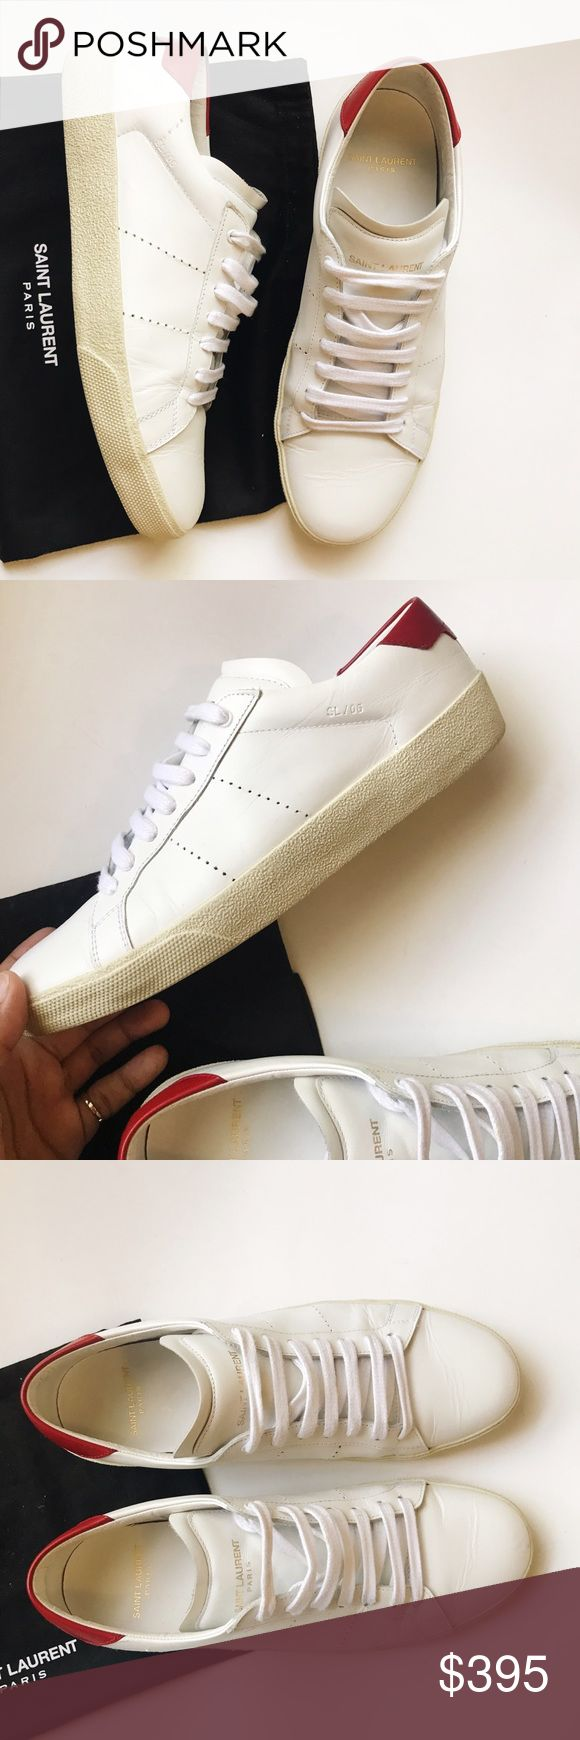 •saint laurent | court classic low top sneakers• Italian size 38 | runs large, fits like a US 8.5 | comes with dust bag, extra laces, and shoe box. Used. Saint Laurent Shoes Sneakers